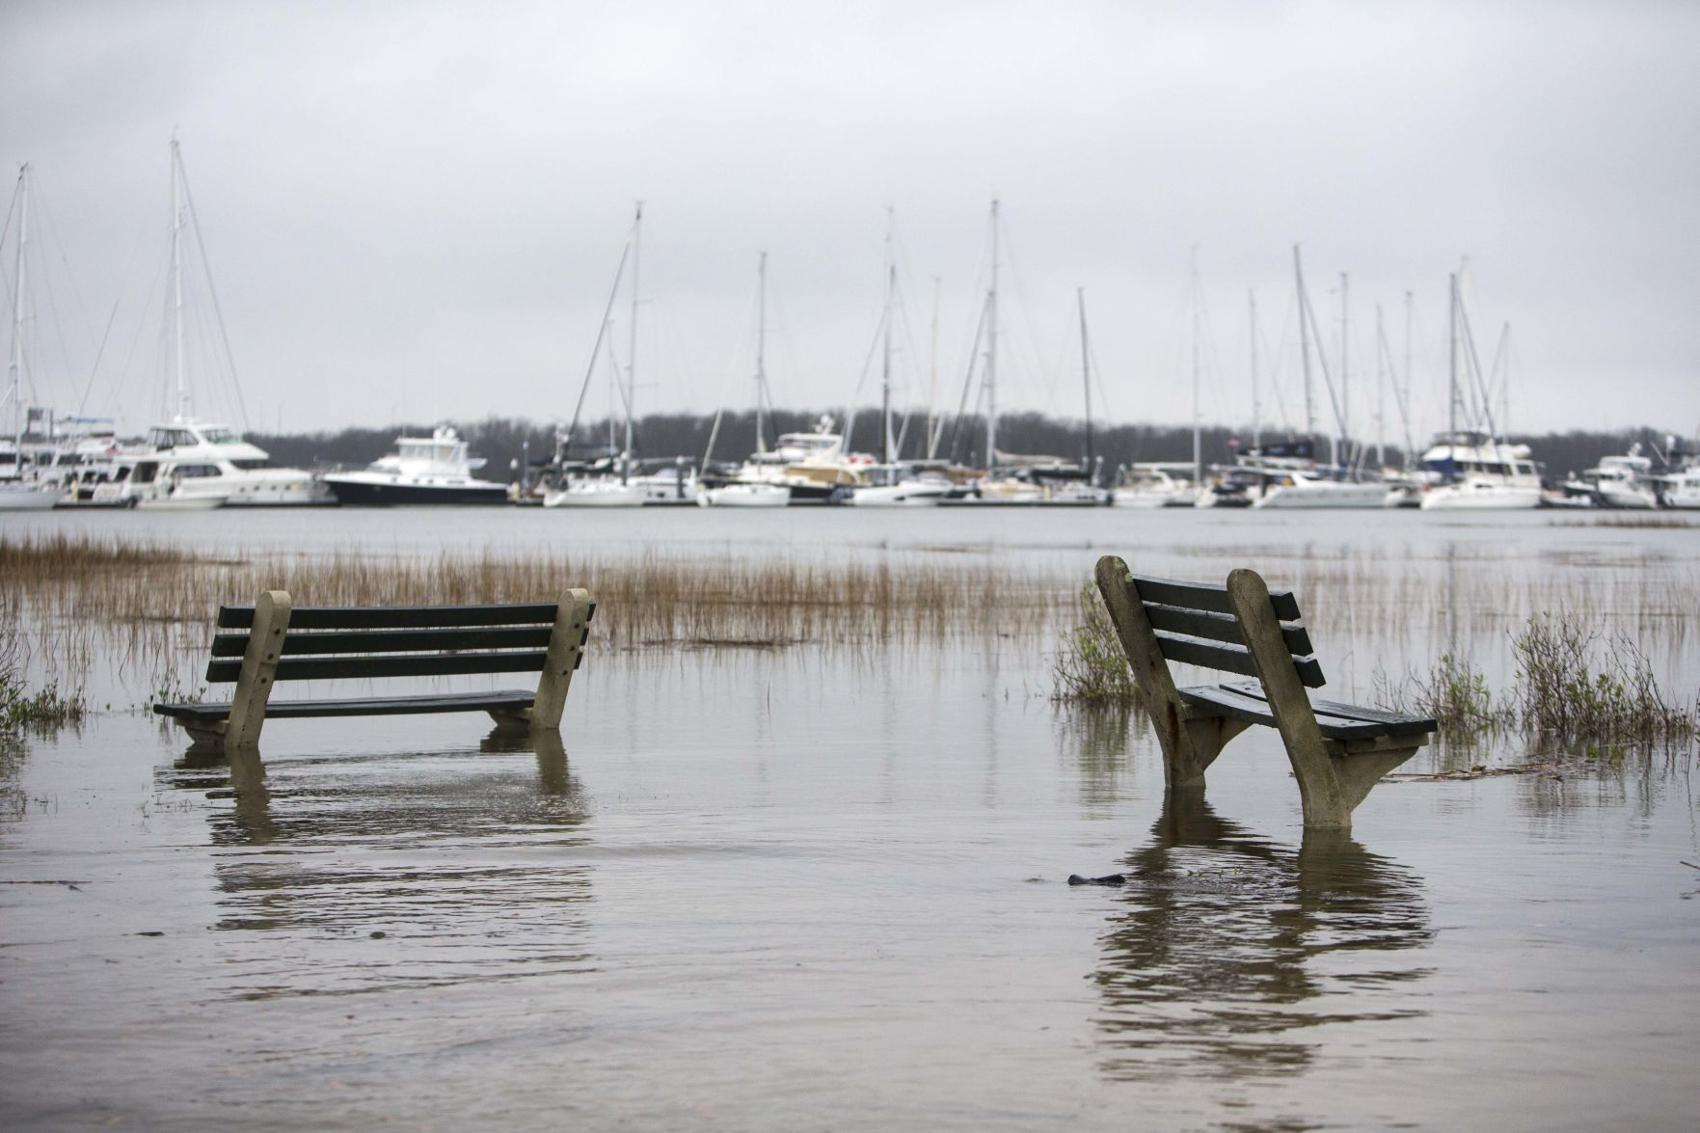 POST AND COURIER – Coastal flooding is accelerating in Charleston and around the US, NOAA reports